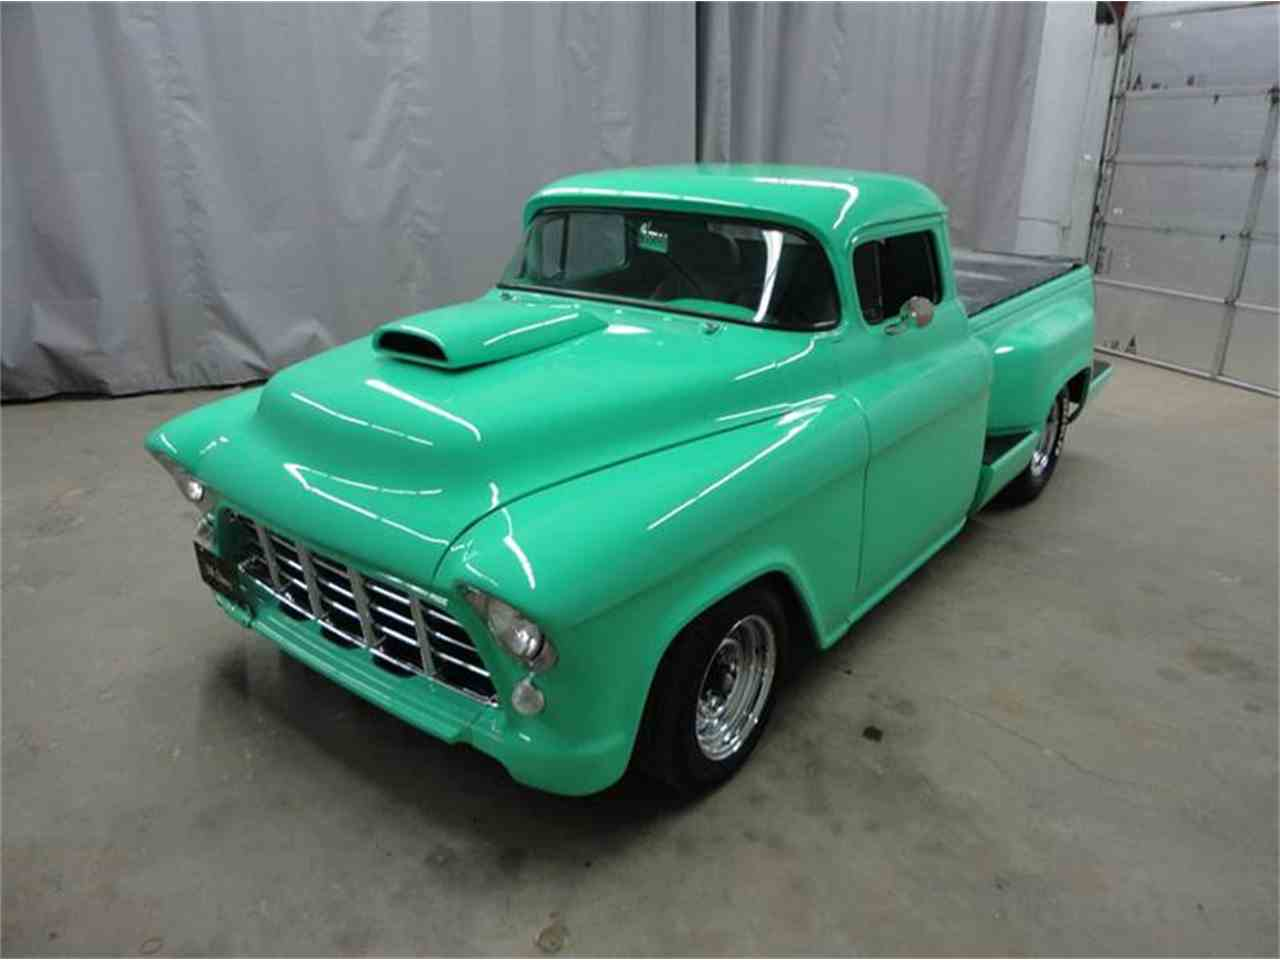 Large Picture of 1958 Chevrolet 3100 Choptop 400cid V8 located in Denver Colorado Offered by Paramount Motors - IGSY